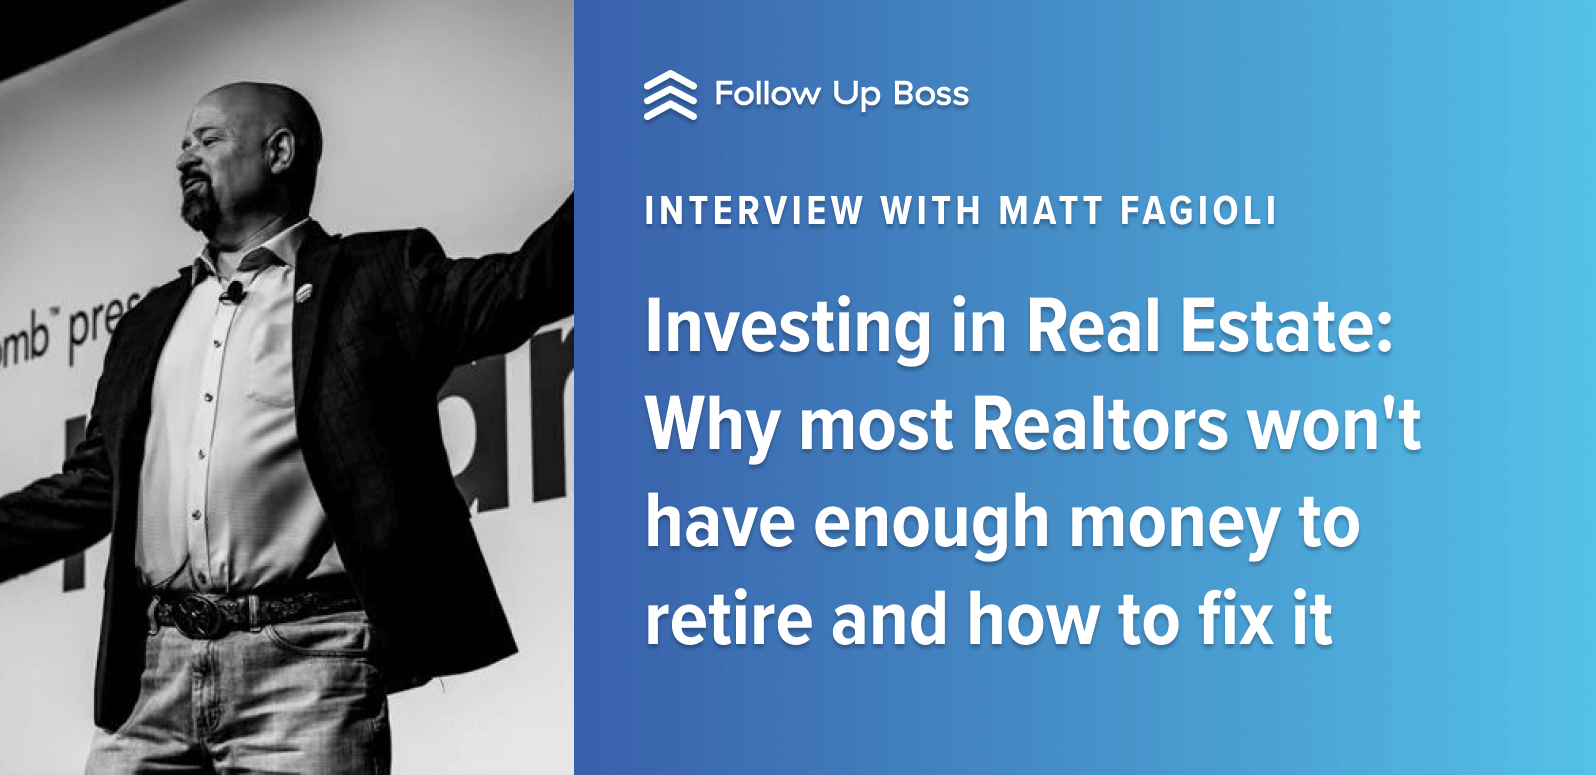 Investing in Real Estate: Why most Realtors won't have enough money to retire and how to fix it